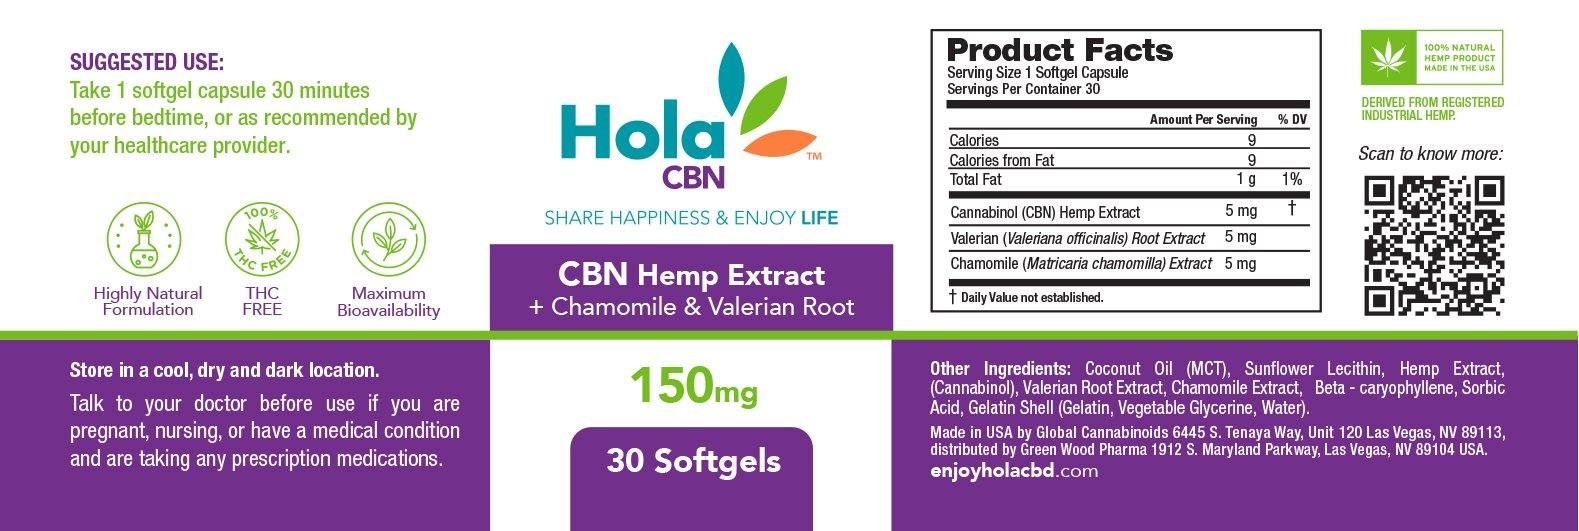 CBN + Valerian Root & Chamomile Extract